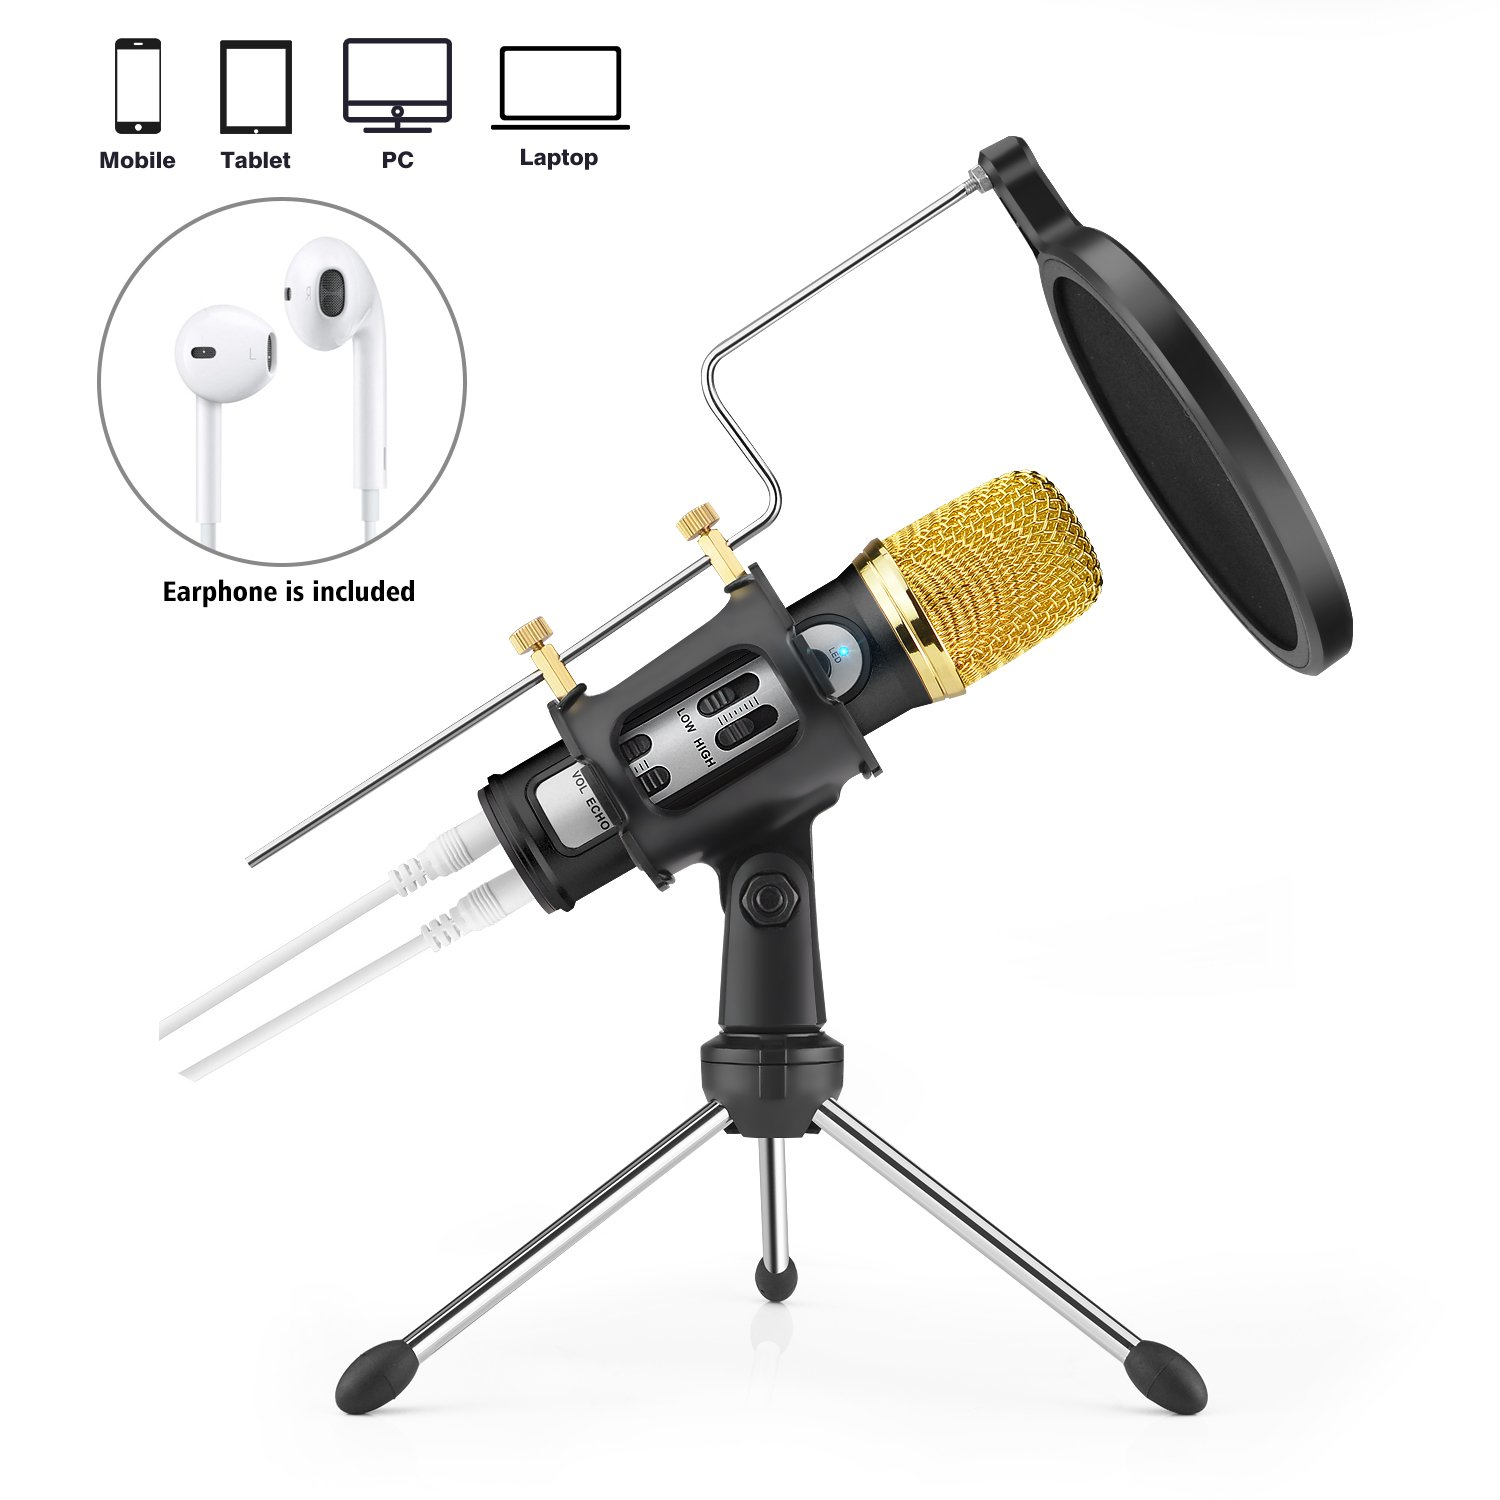 FerBuee Professional Condenser Microphone for iPhone Android Phone Recording Echo Karaoke Singing Built-in Sound Card MIC Computer PC Microphones with MIC Stand